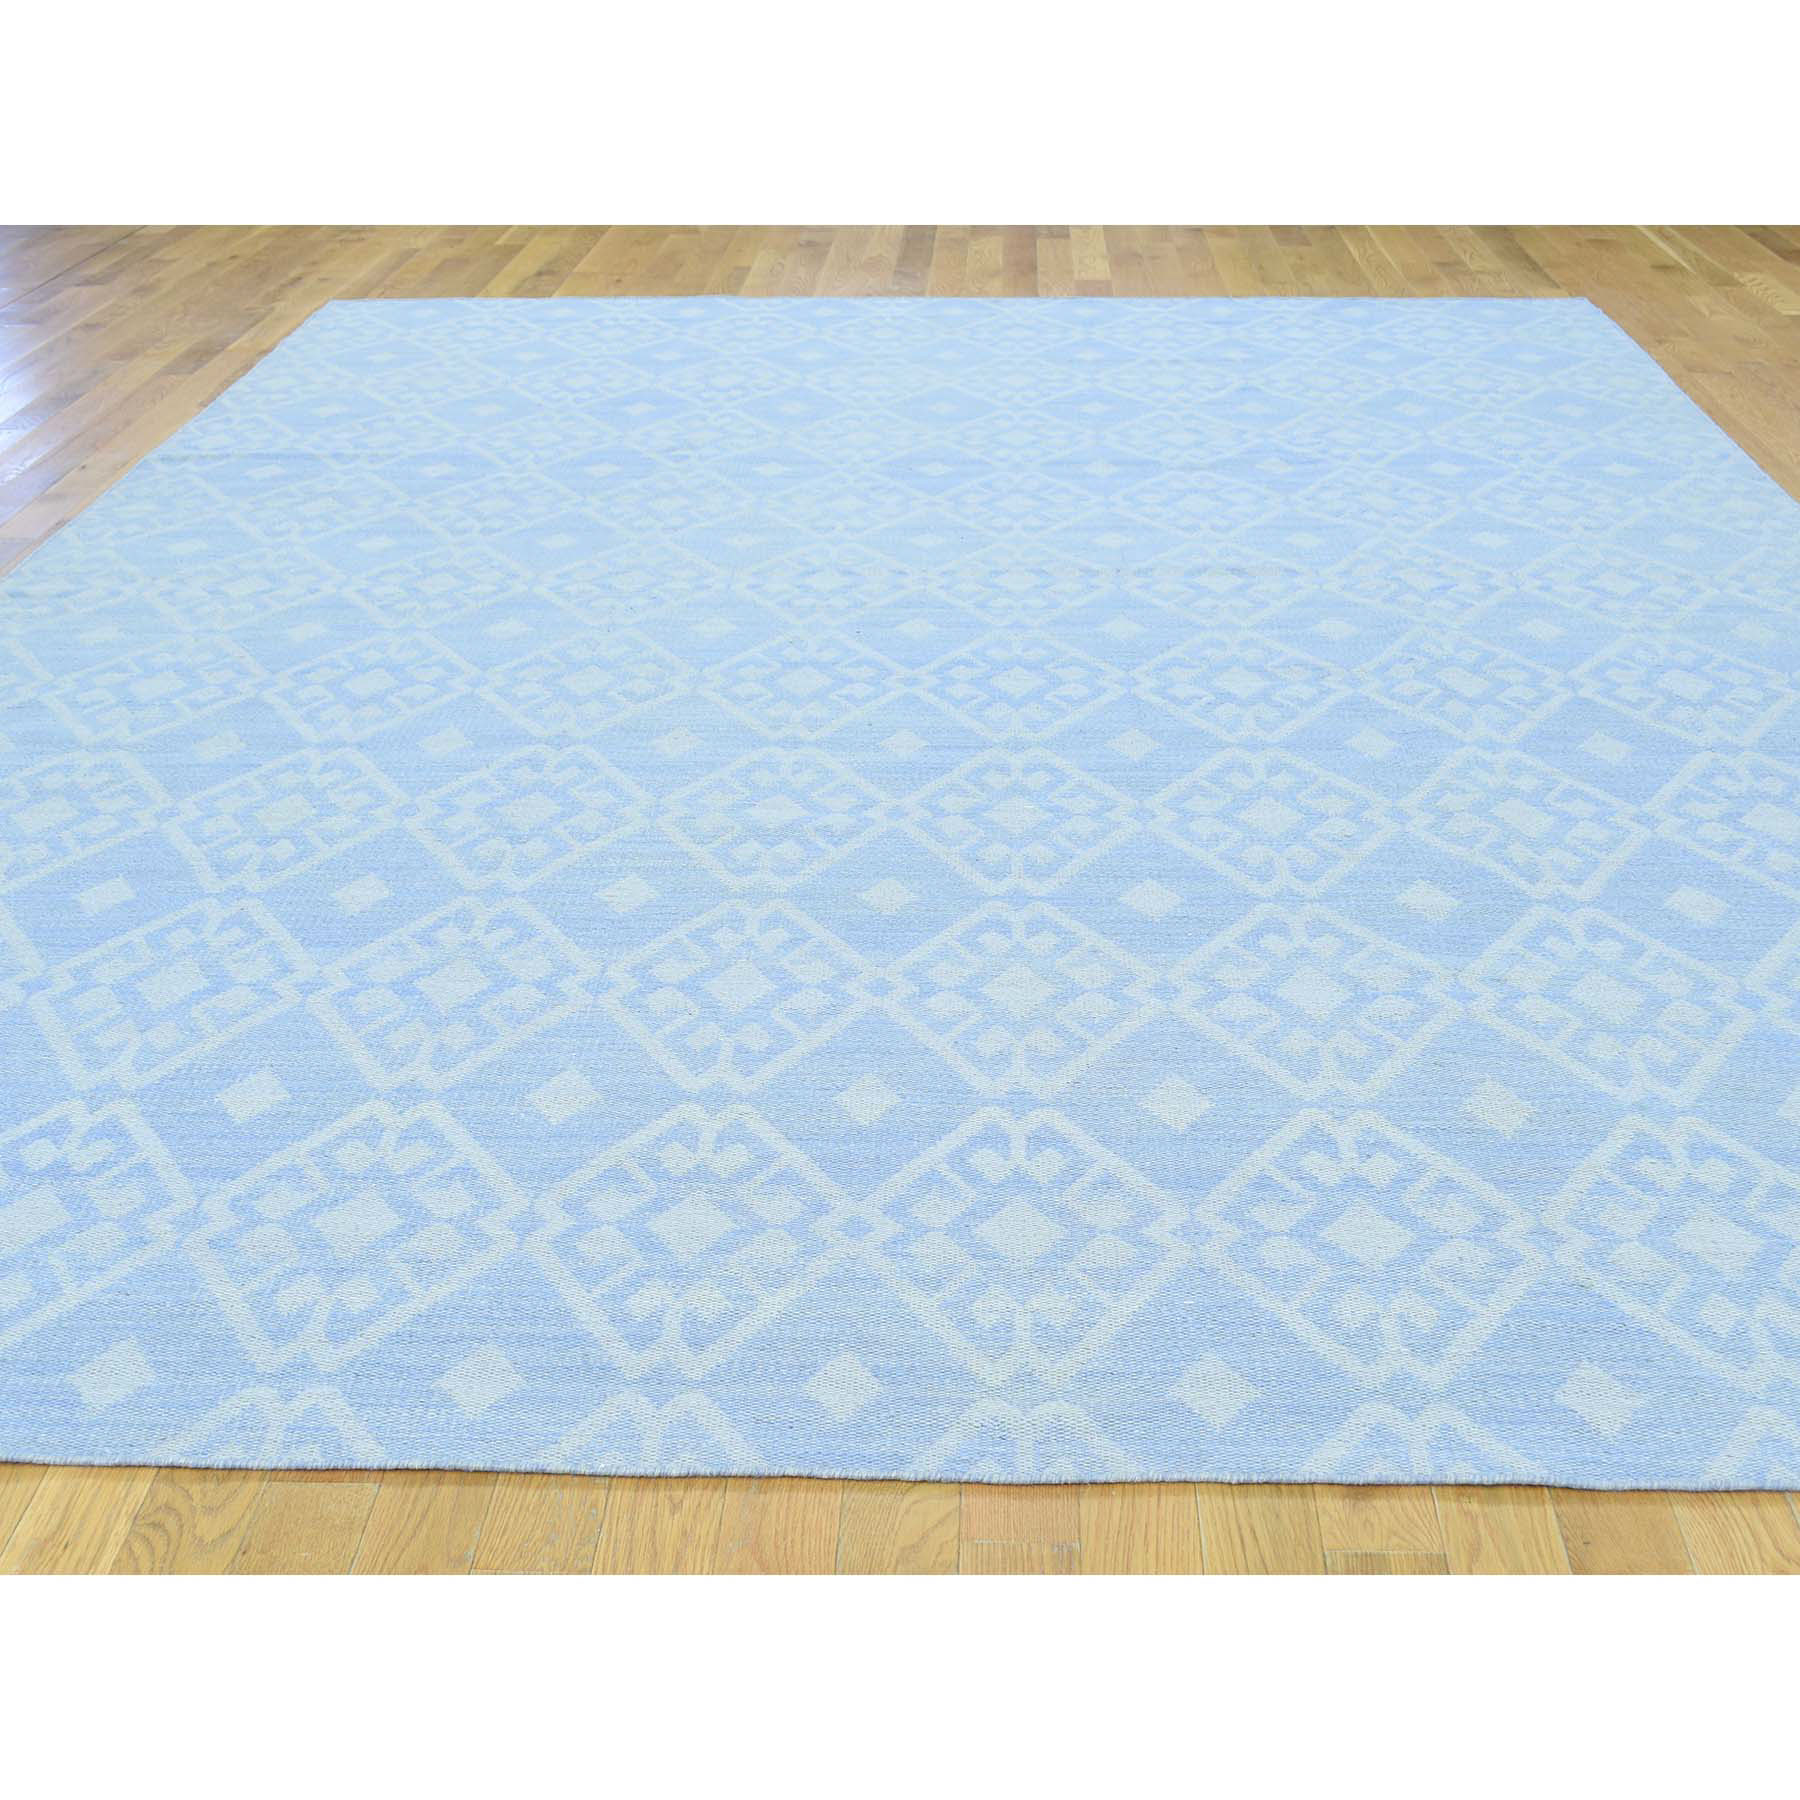 9-x12-1  Flat Weave Hand Woven Reversible Durie Kilim Oriental Rug